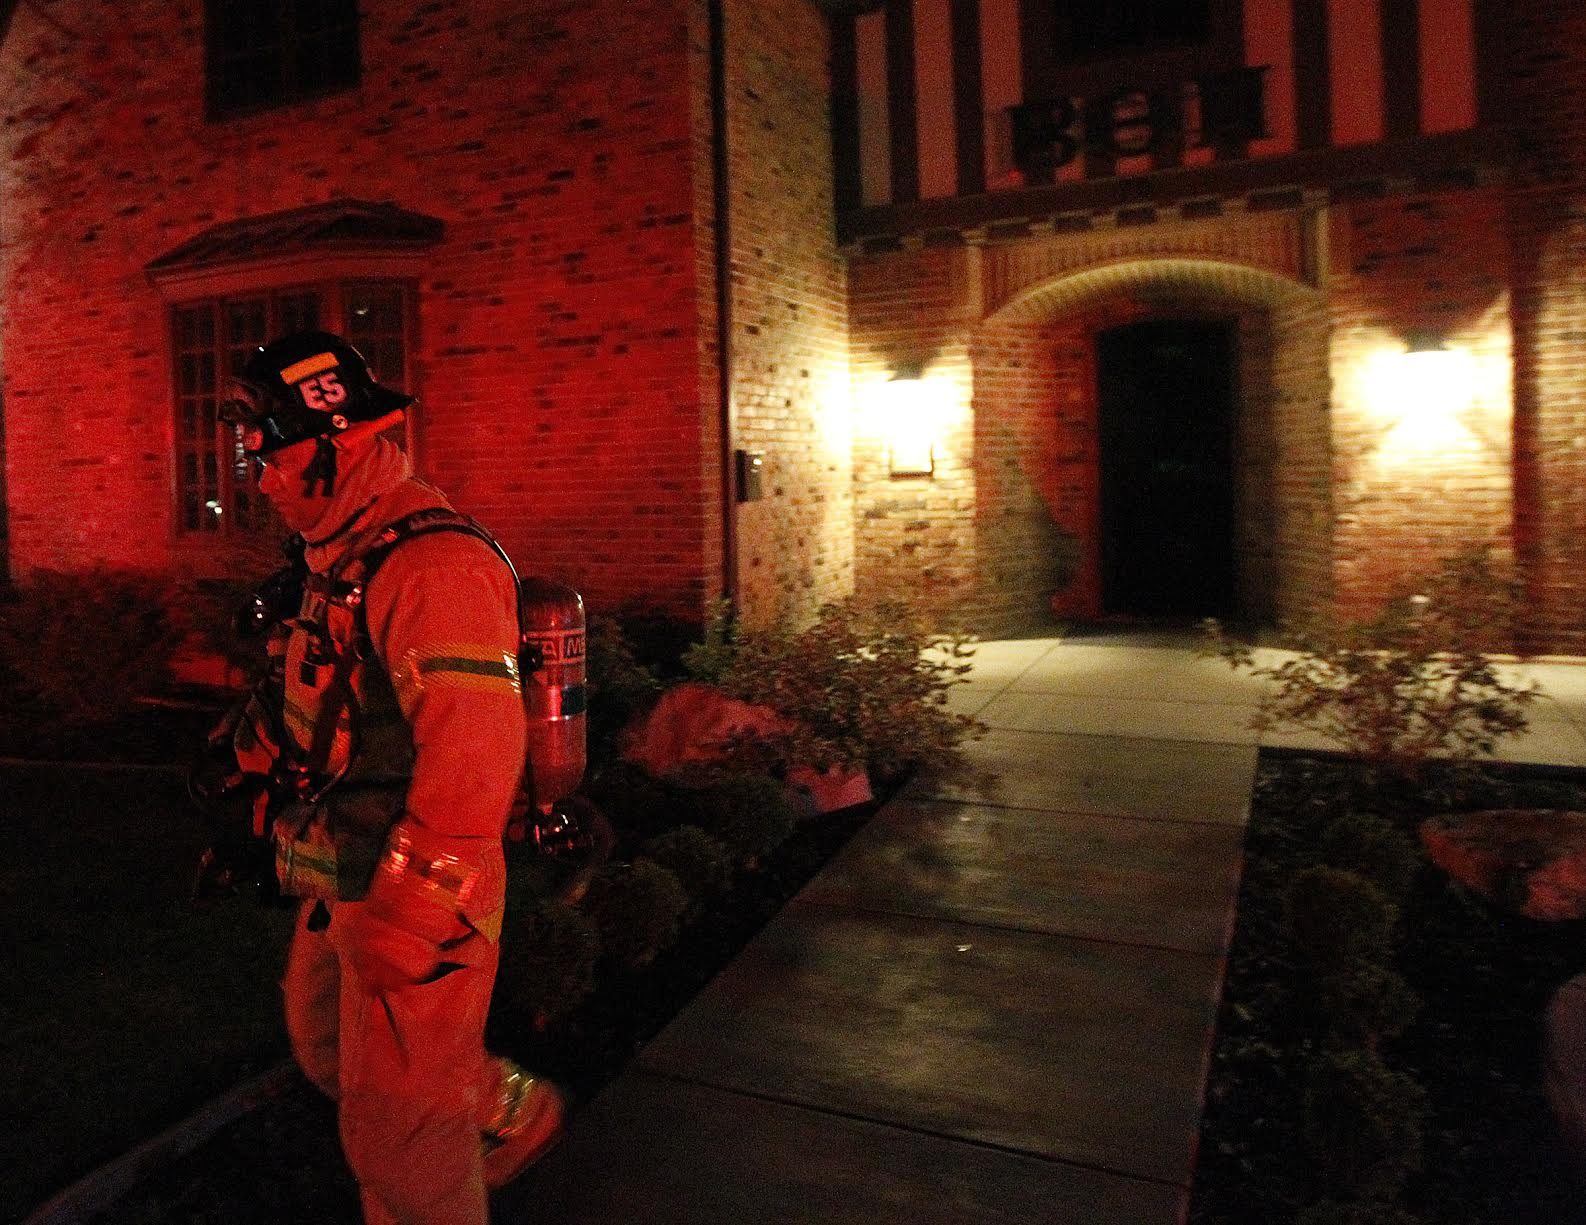 Fire crews respond to a call at the Beta Theta Pi fraternity house at the University of Utah, Friday, July 3, 2015. Fires were reported at two fraternity houses early morning Friday.